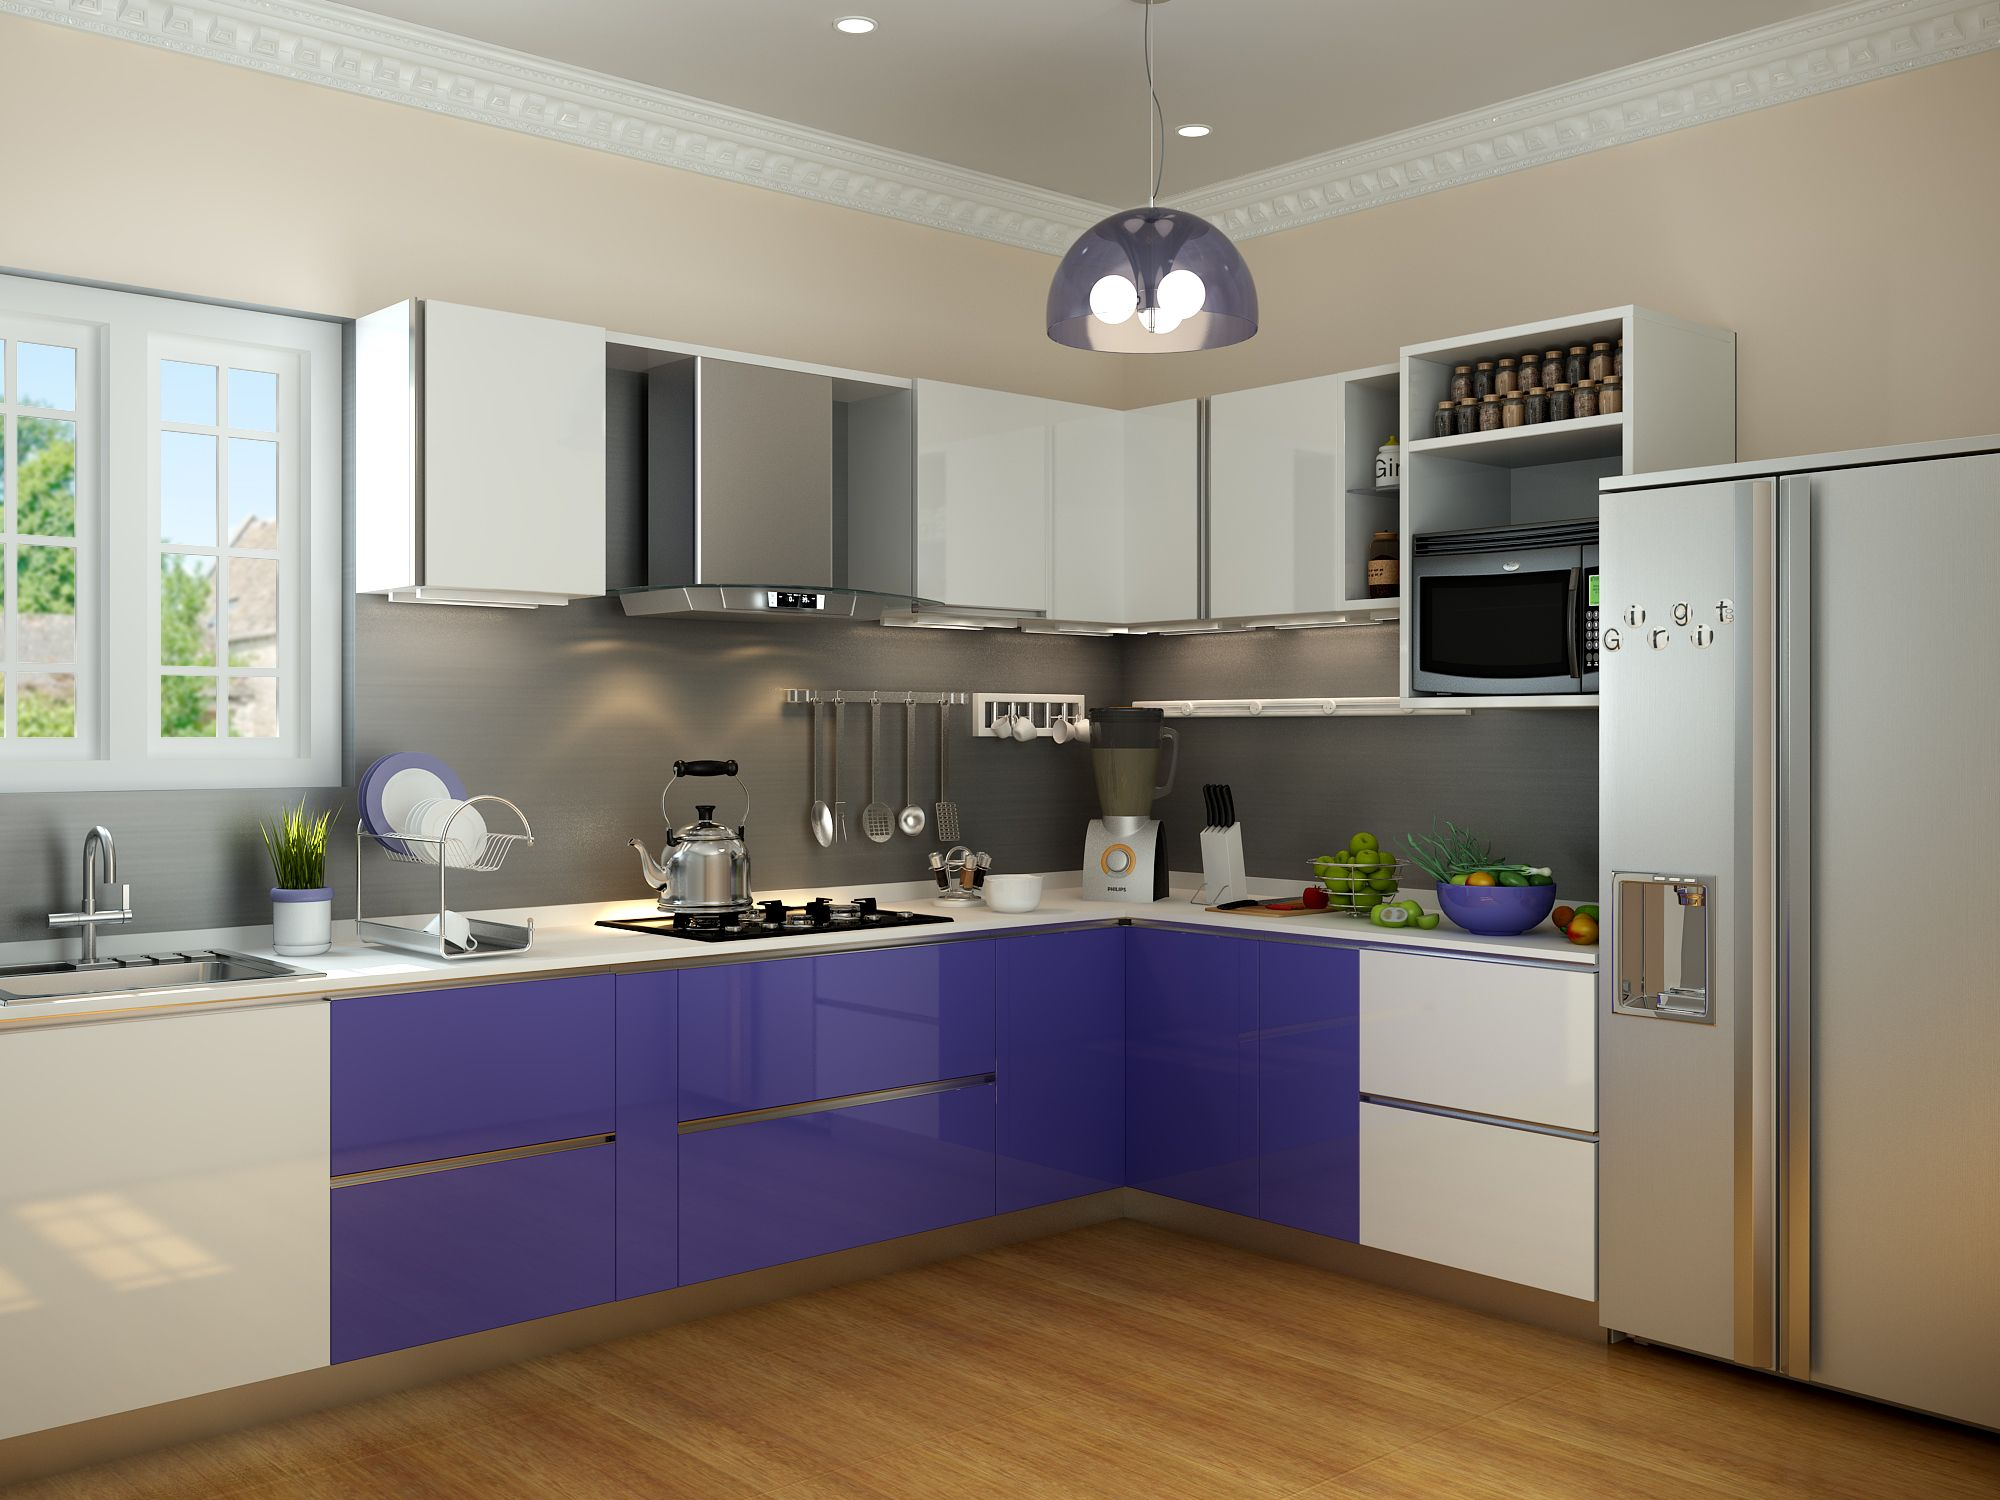 Modular Kitchen in bangalore are made for bringing families together. The flooring is skilfully made out of wooden panels. It enhances the looks of this L shaped culinary space. Purple calms the mind and uplifts the energy in you.